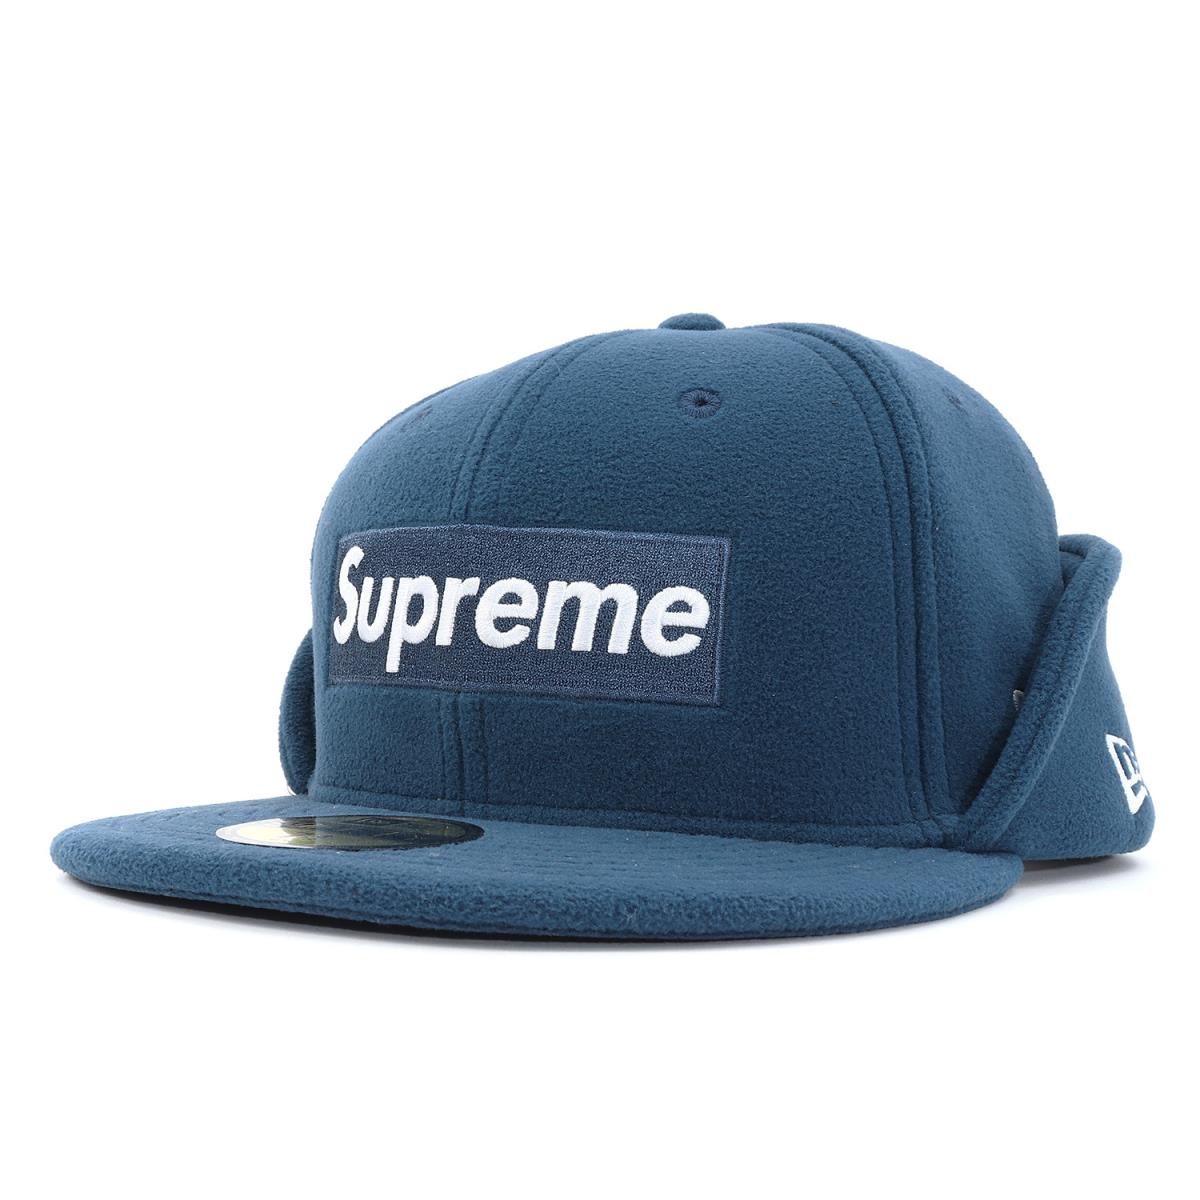 badc5a0f Supreme (シュプリーム) 17A/W X NEW ERA fleece BOX logo baseball cap (Polartec ...